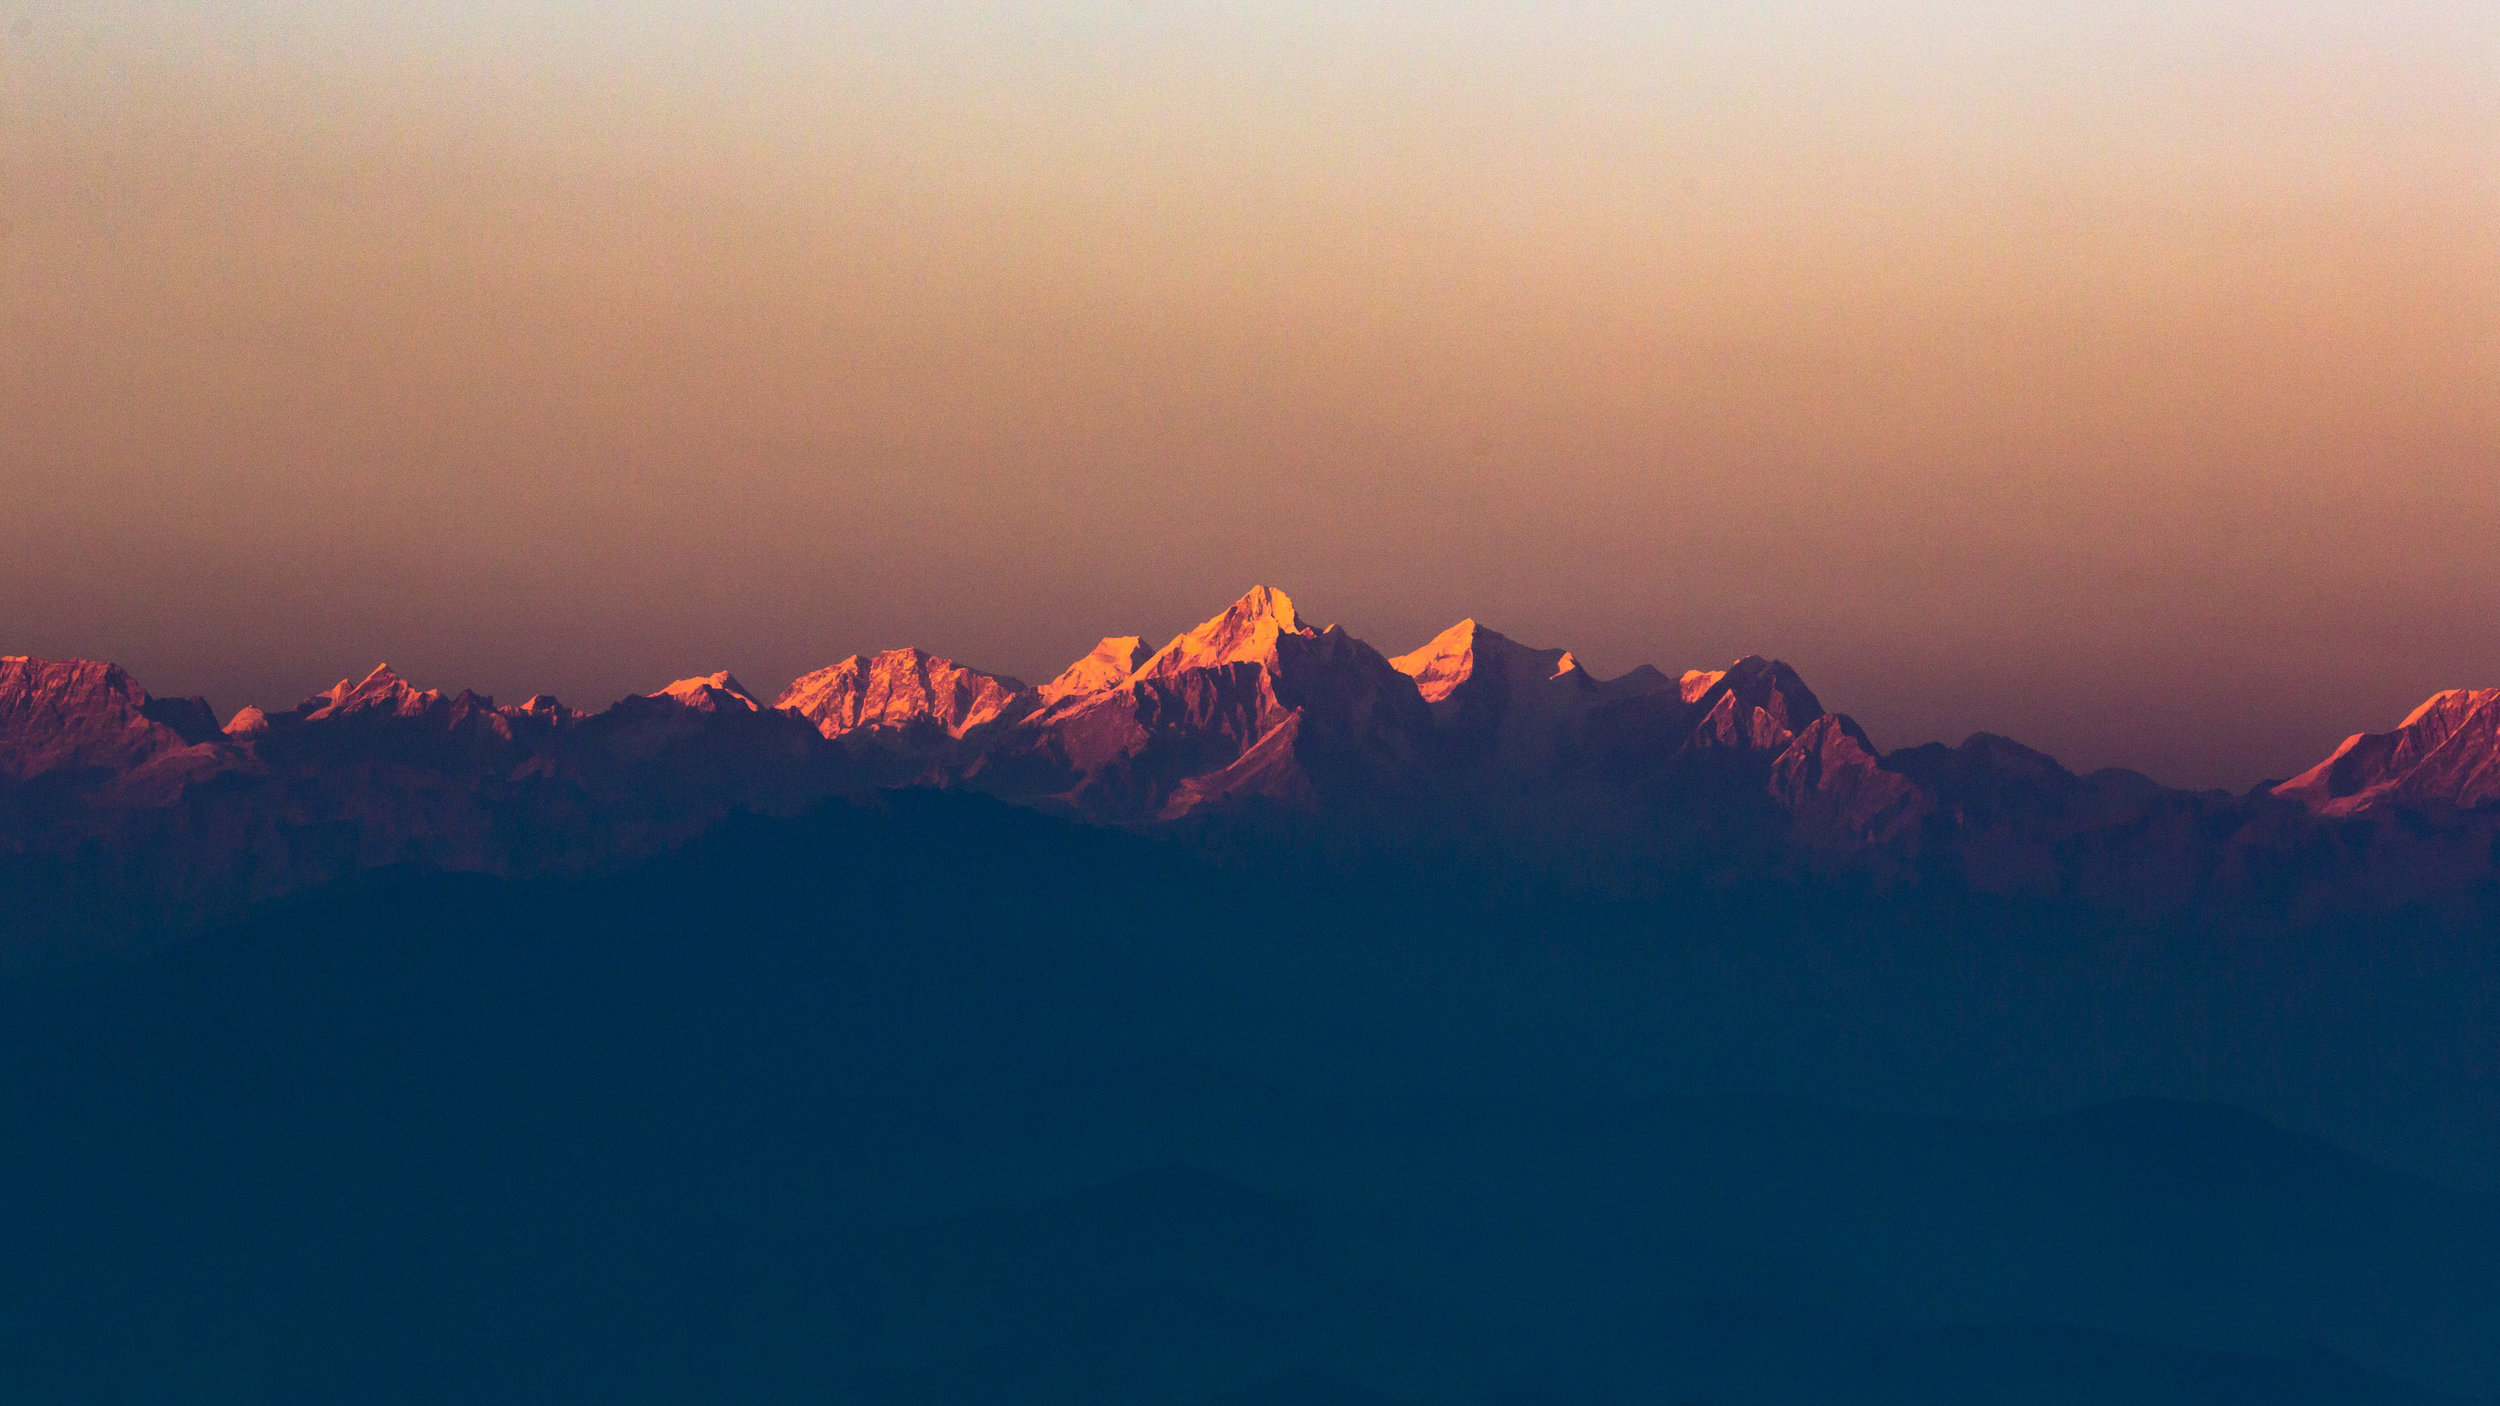 There's a very nice glow to the snow capped Himalayas during sunrises and sunsets